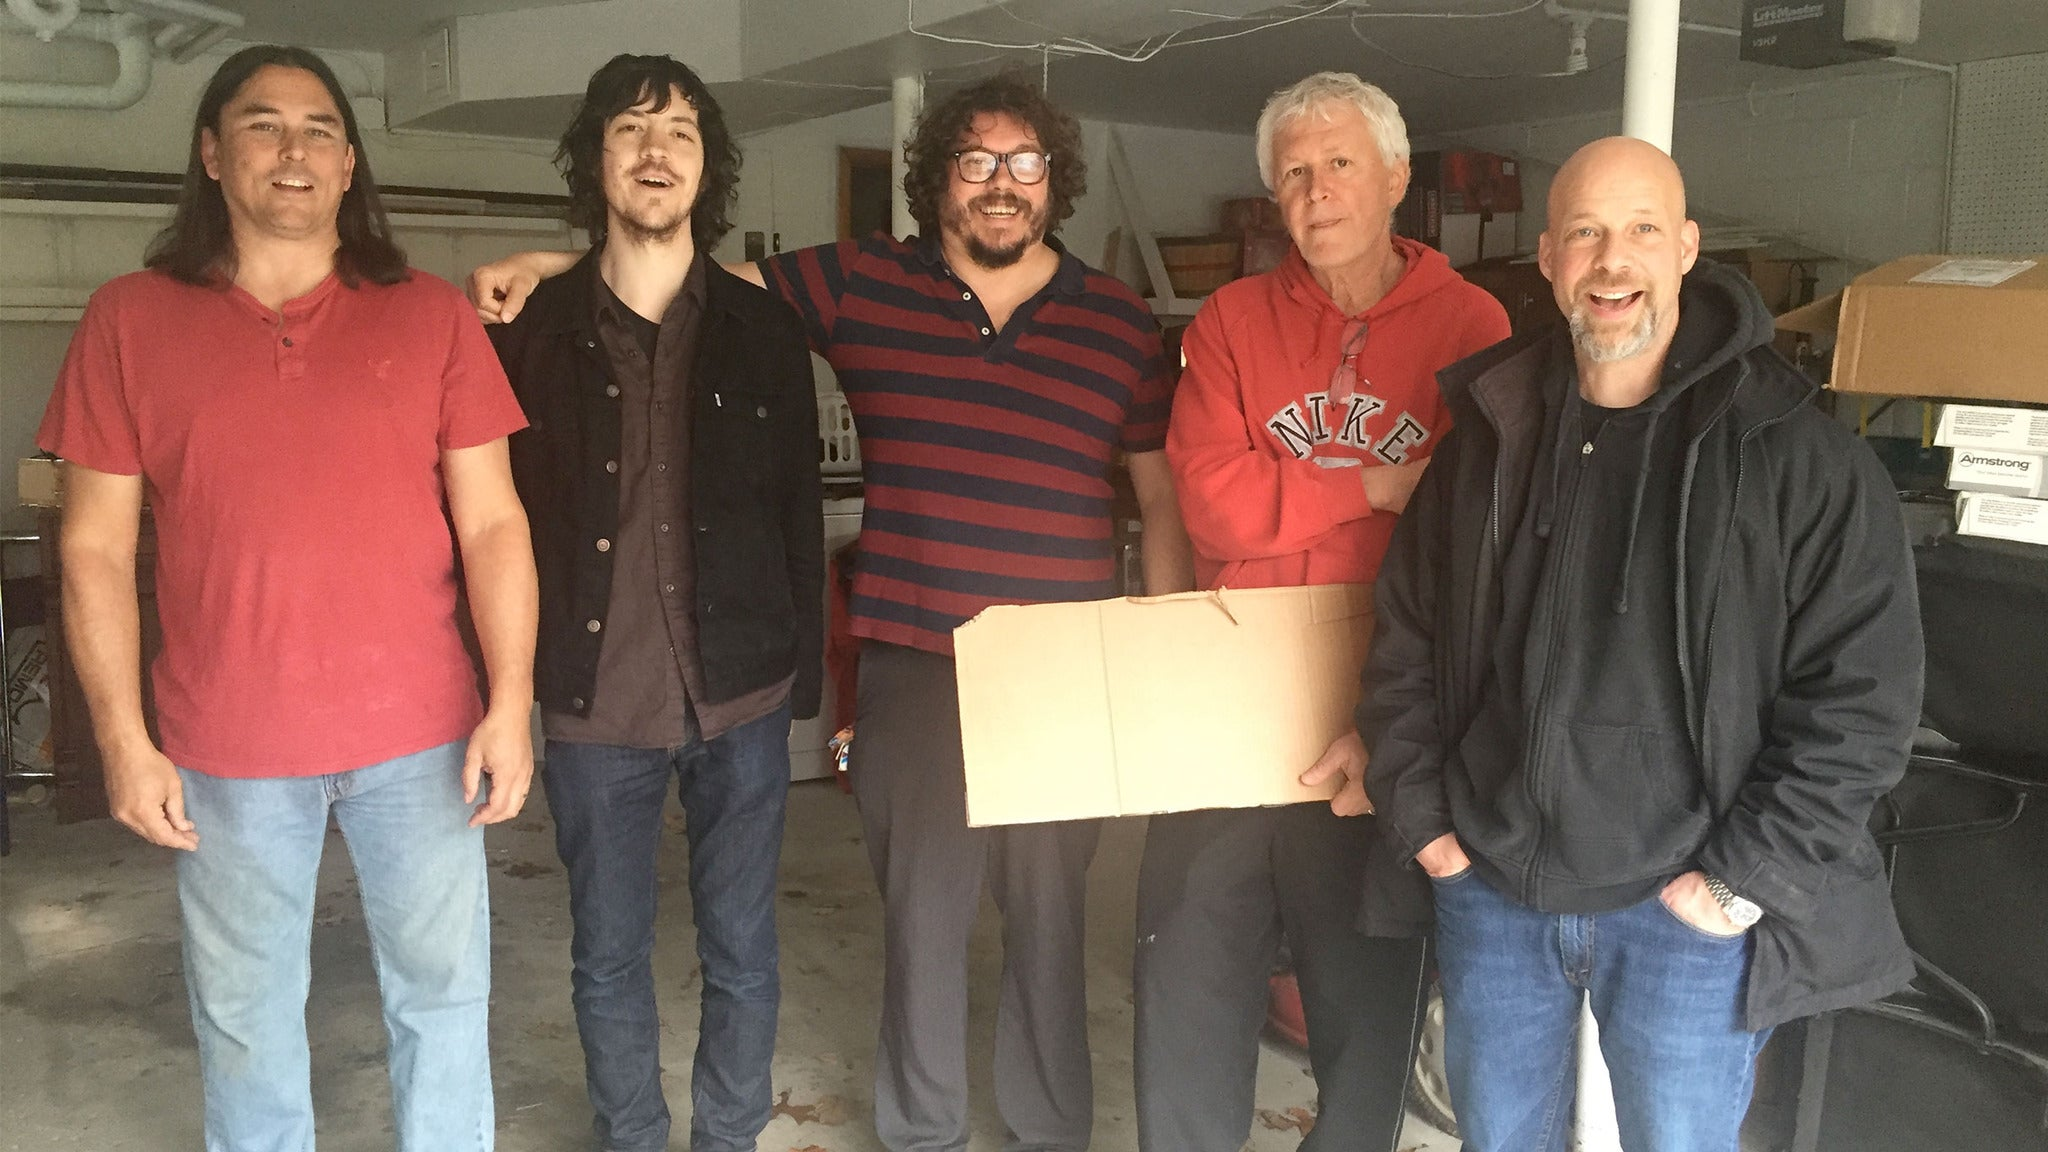 An Evening with Guided By Voices at The Underground